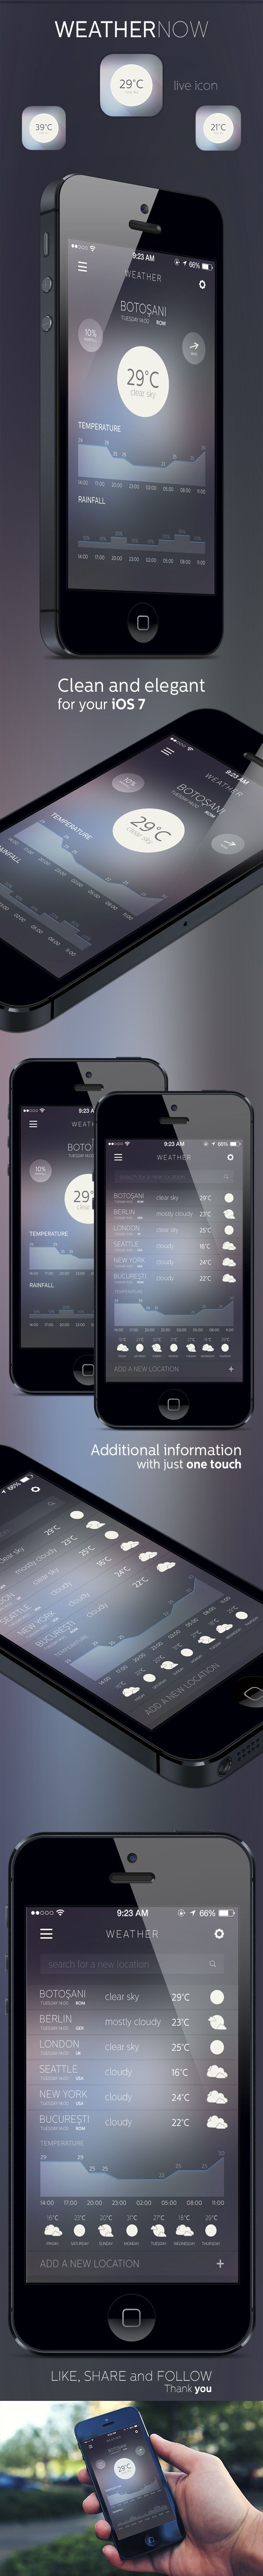 WEATHER NOW by Alexandru Stoica, via Behance. For more details visit http://mobilewebmds.com/mobile-apps/